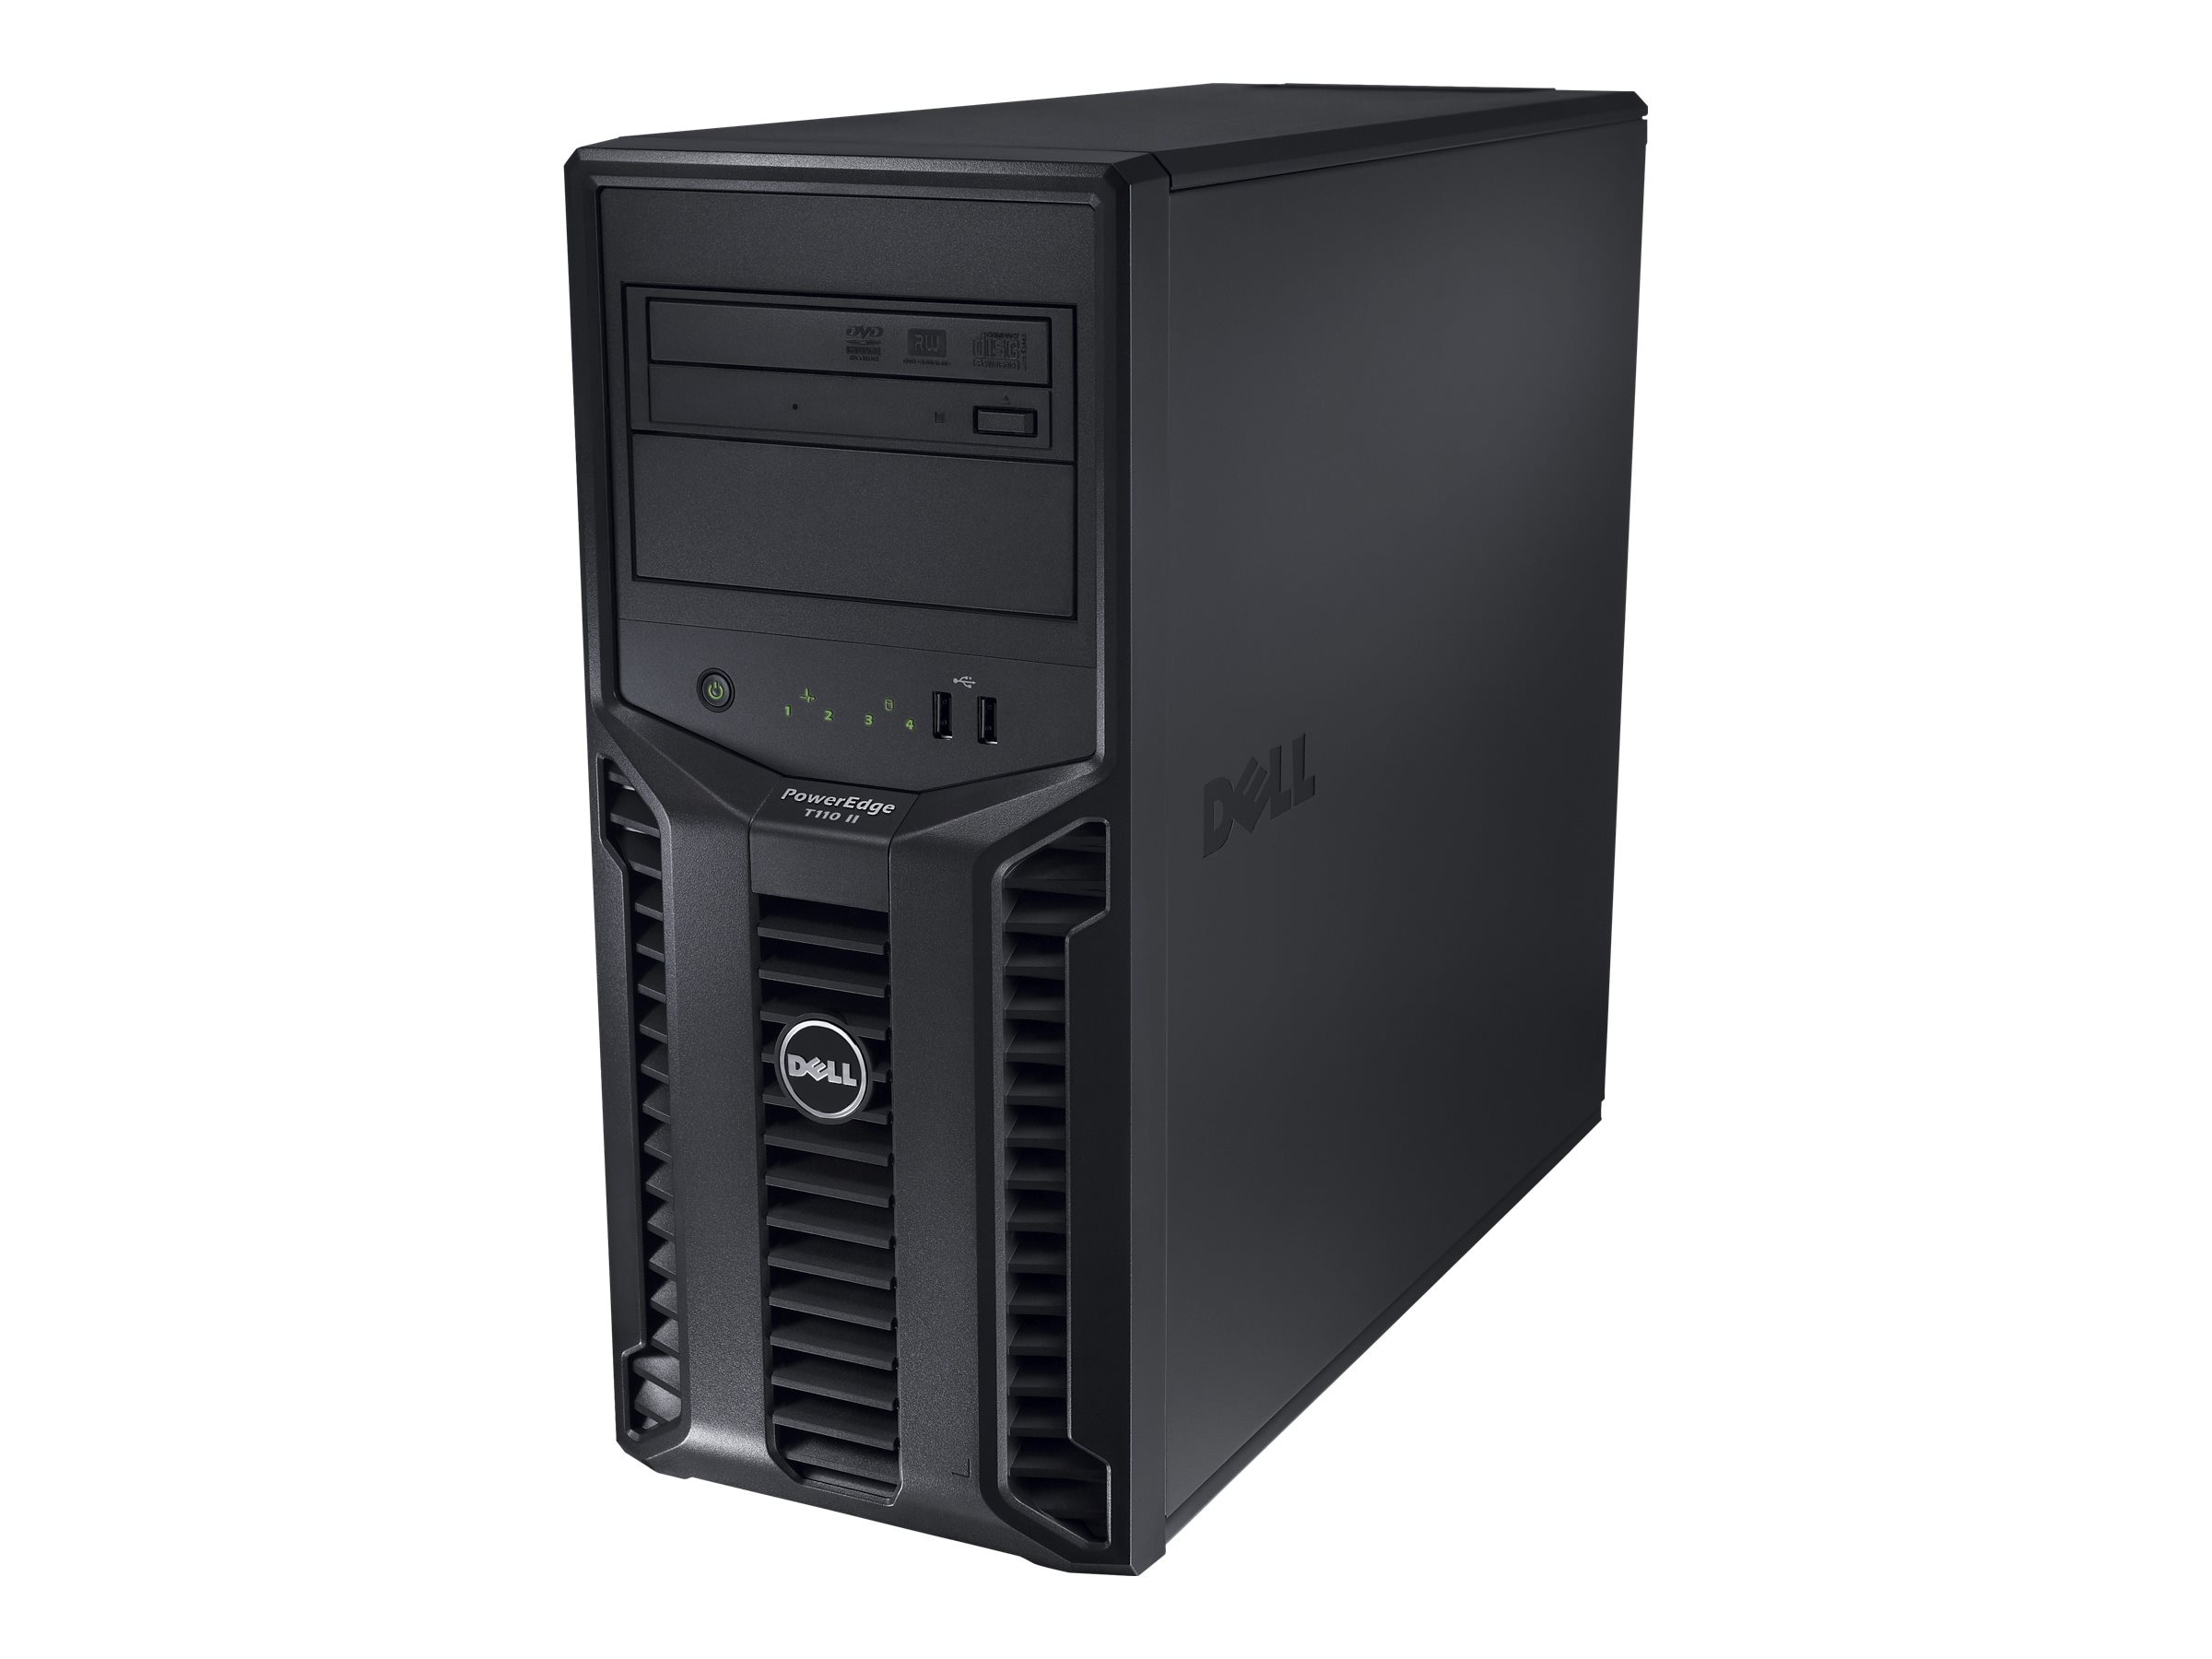 Dell PowerEdge T110 II Tower Core i3-3240 3.4GHz 4GB 4x3.5 DC Bays DVD GbE 305W, 463-7046, 26687541, Servers